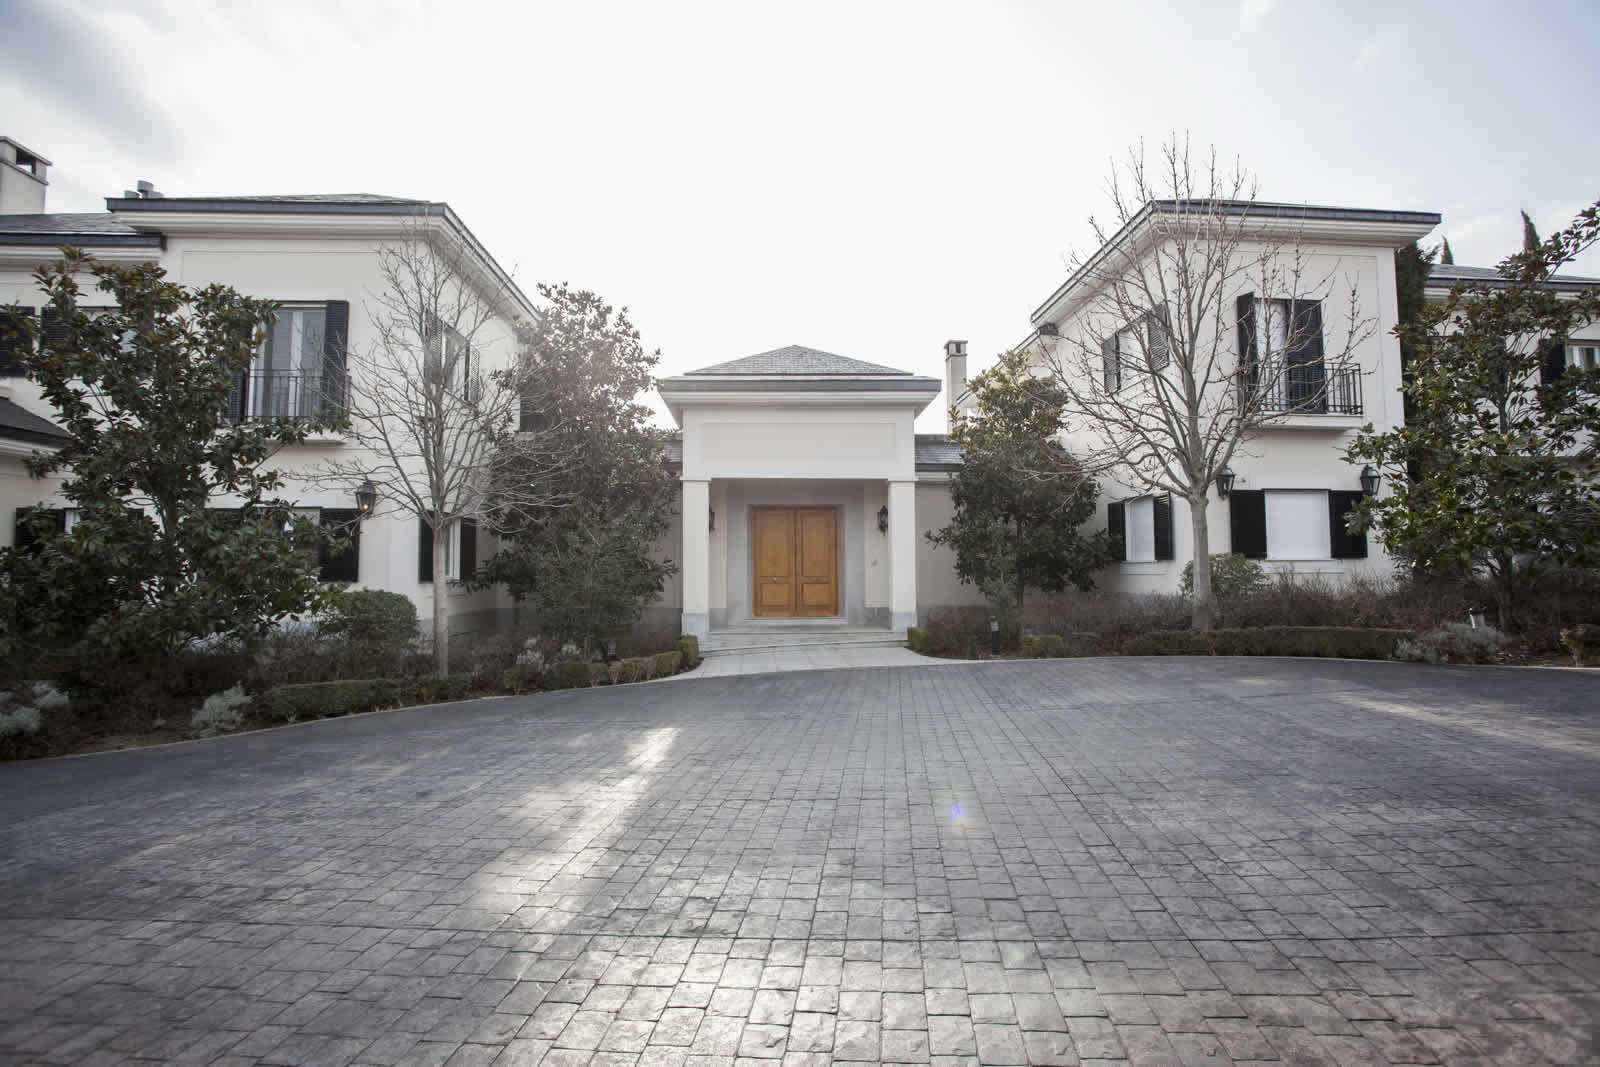 10 bedroom mansion with 3 floors large garden jacuzzi for 10 bedroom mansion